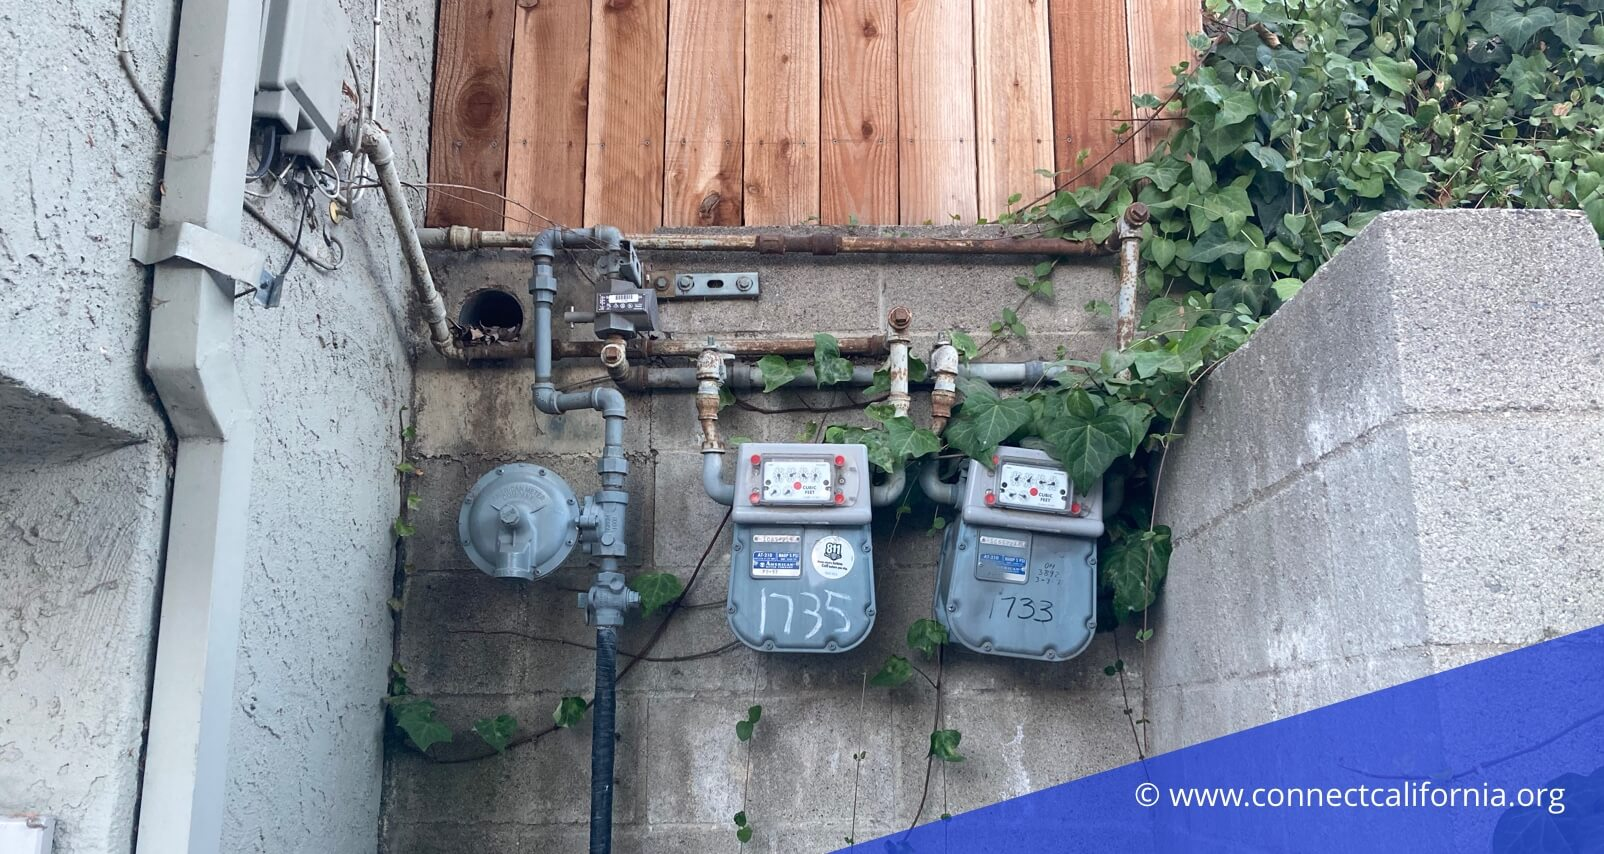 Water meters in California.